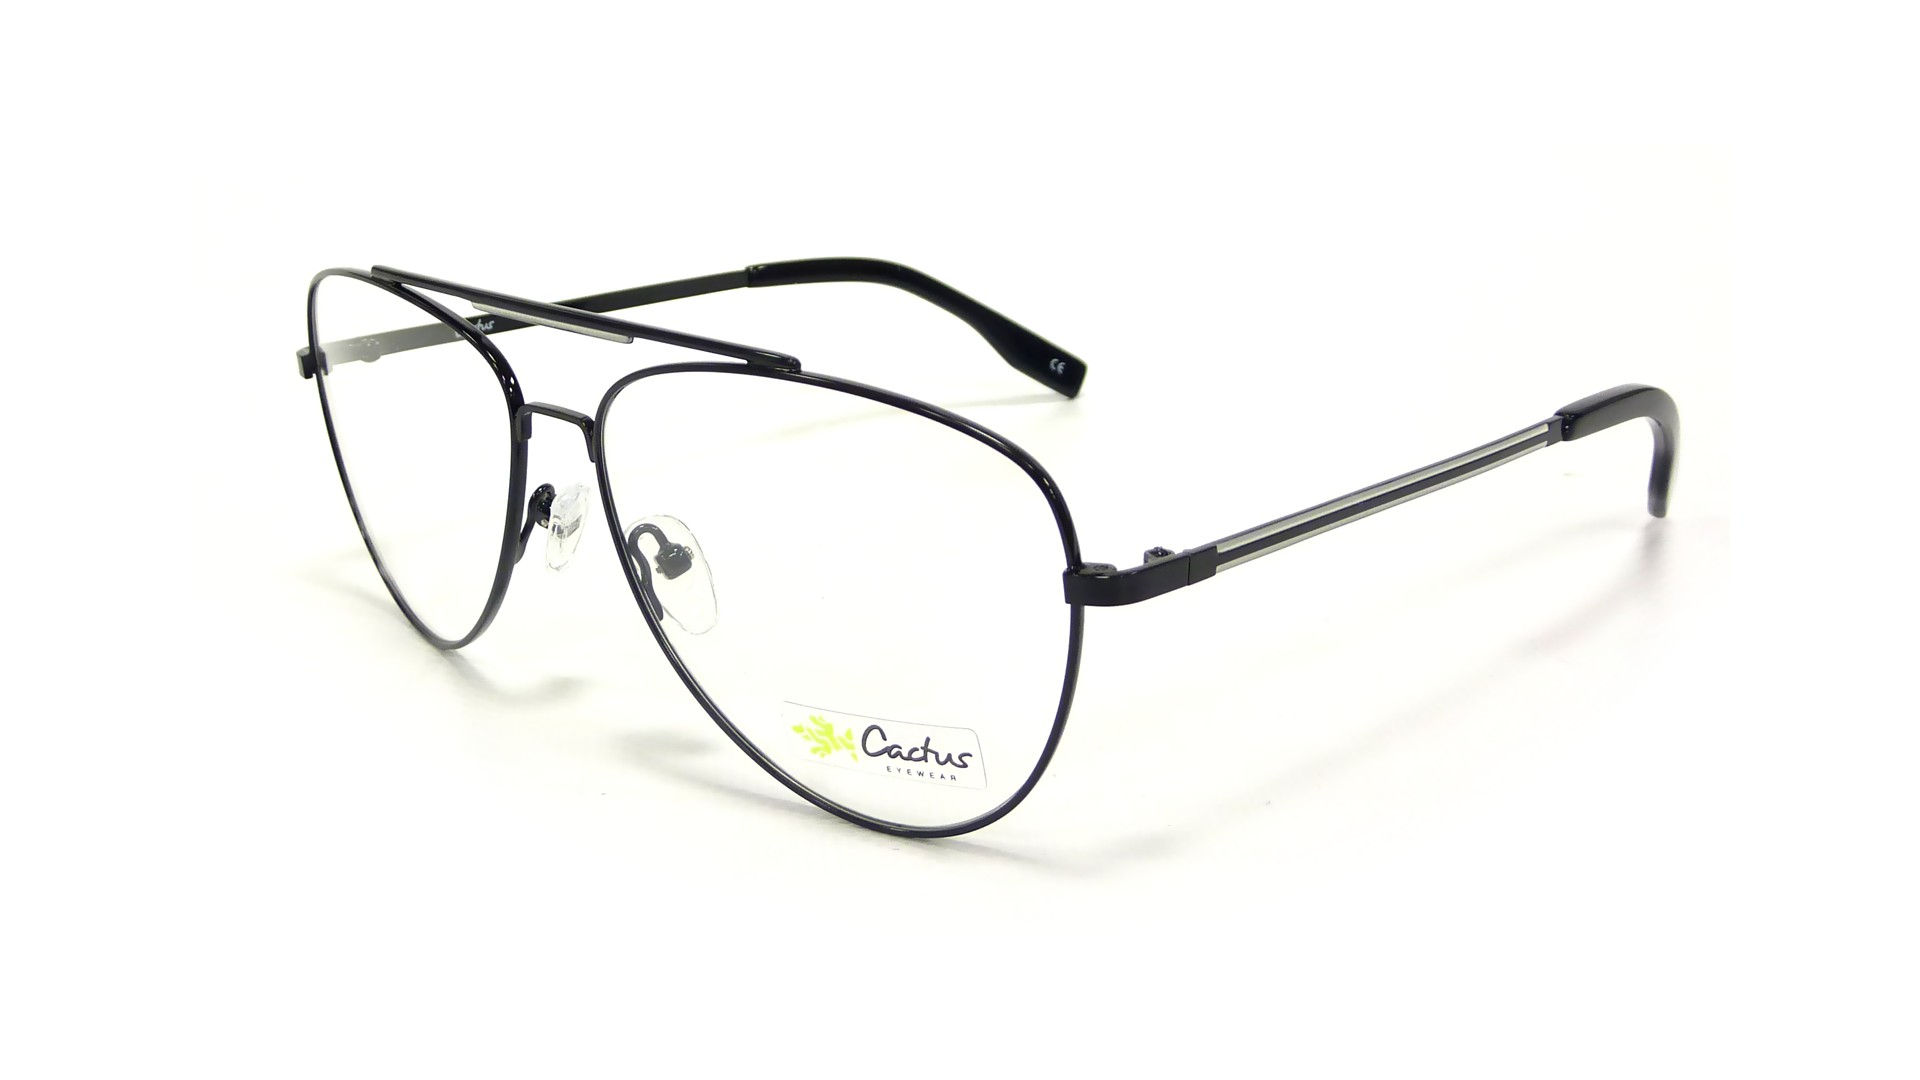 Glasses Frames Recto Or Quiapo : Eye glasses Cactus Tequilo 01 C02 Black